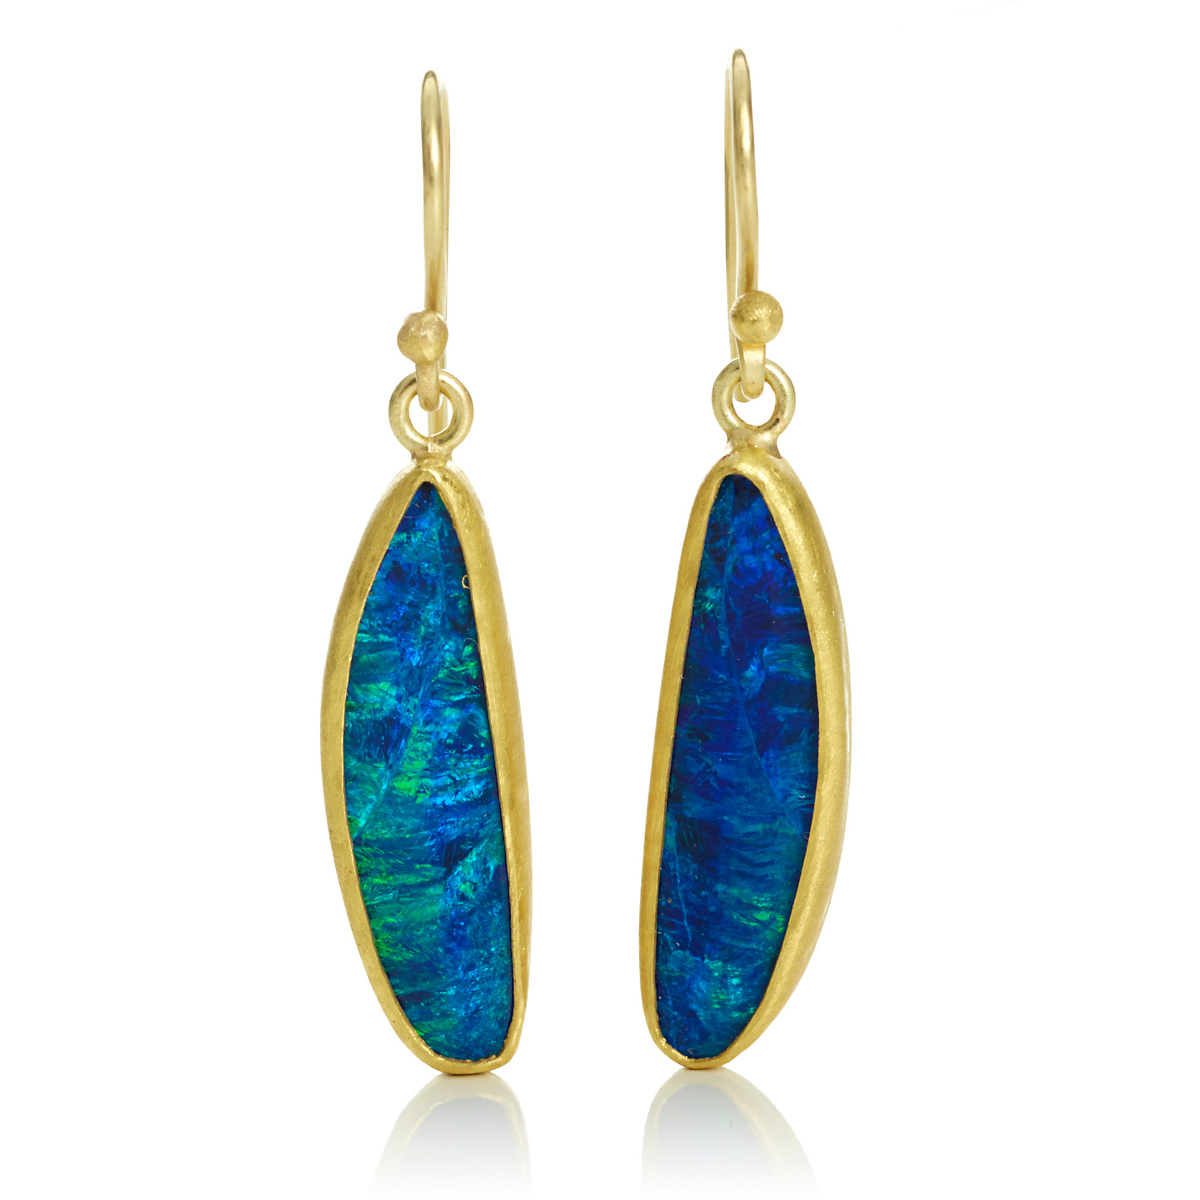 Petra Class Opal Doublet Slender Drop Earrings